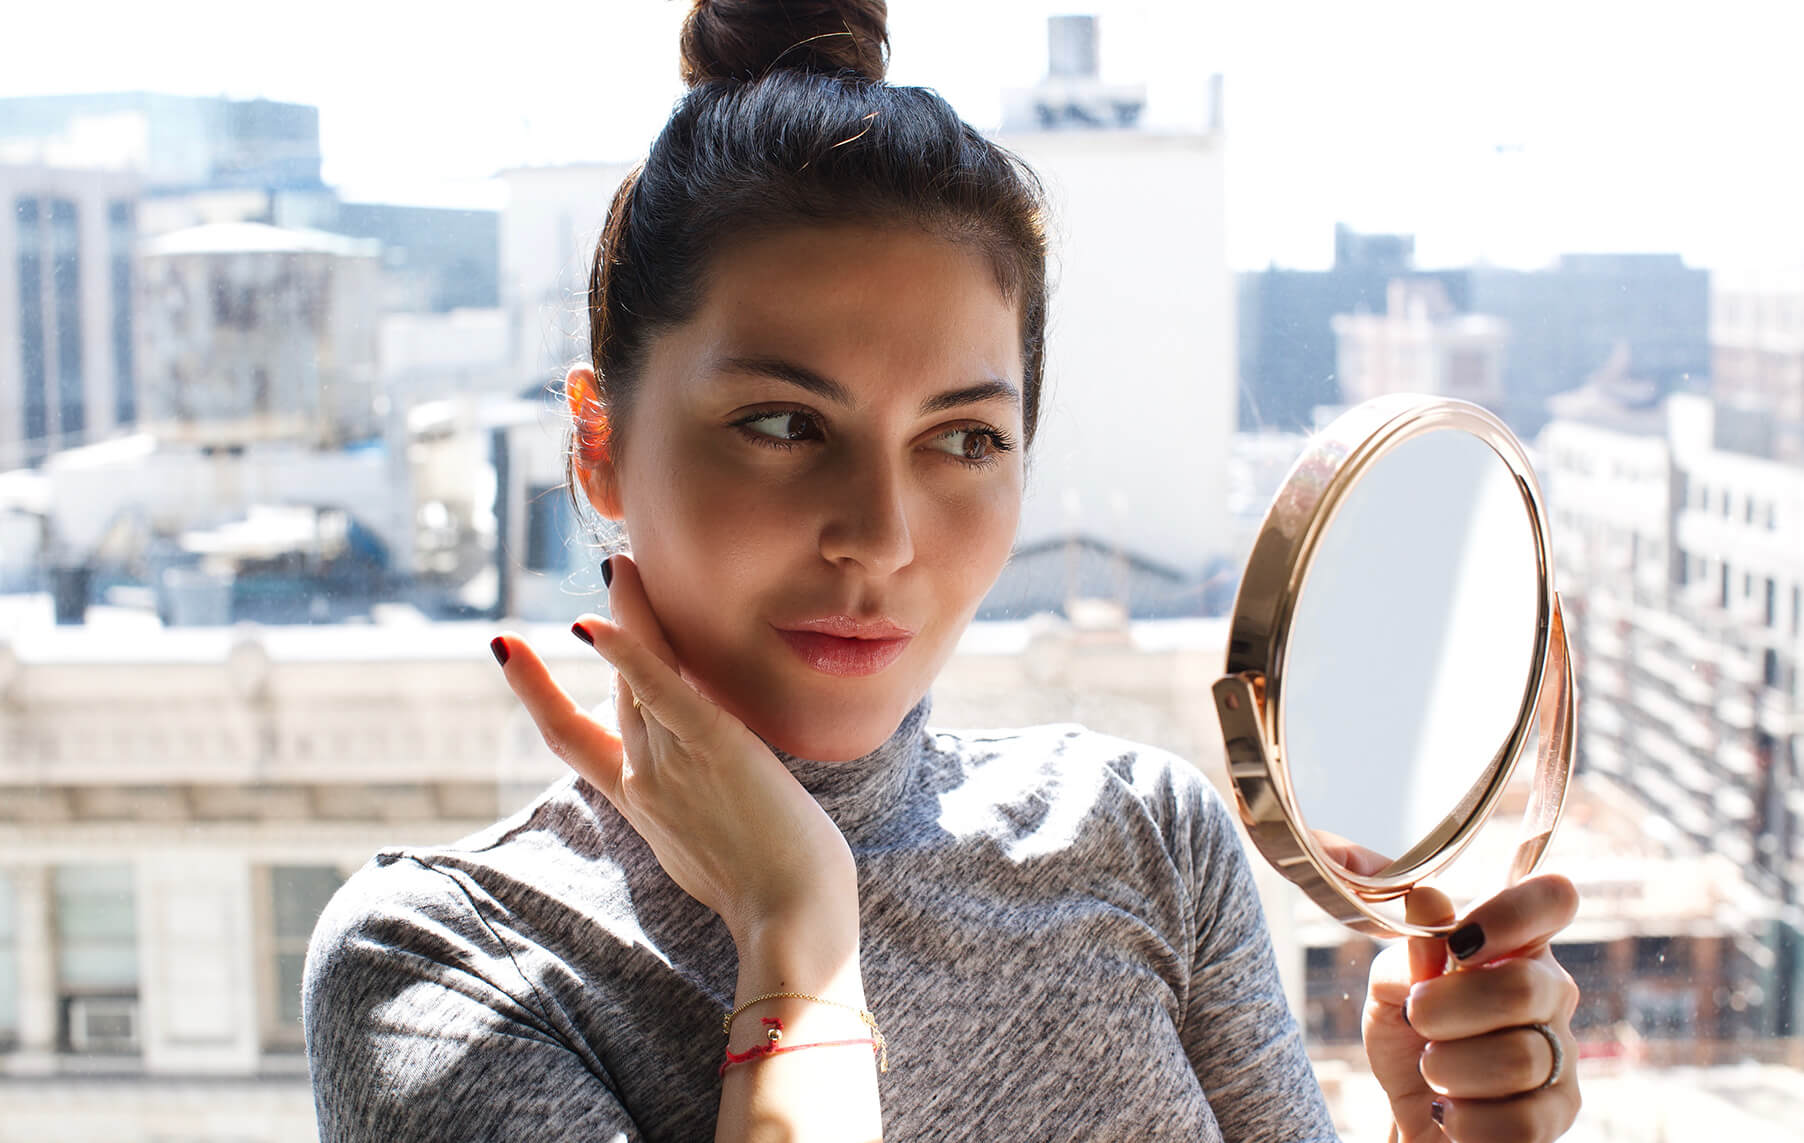 skincare myths debunked with sona gasparian